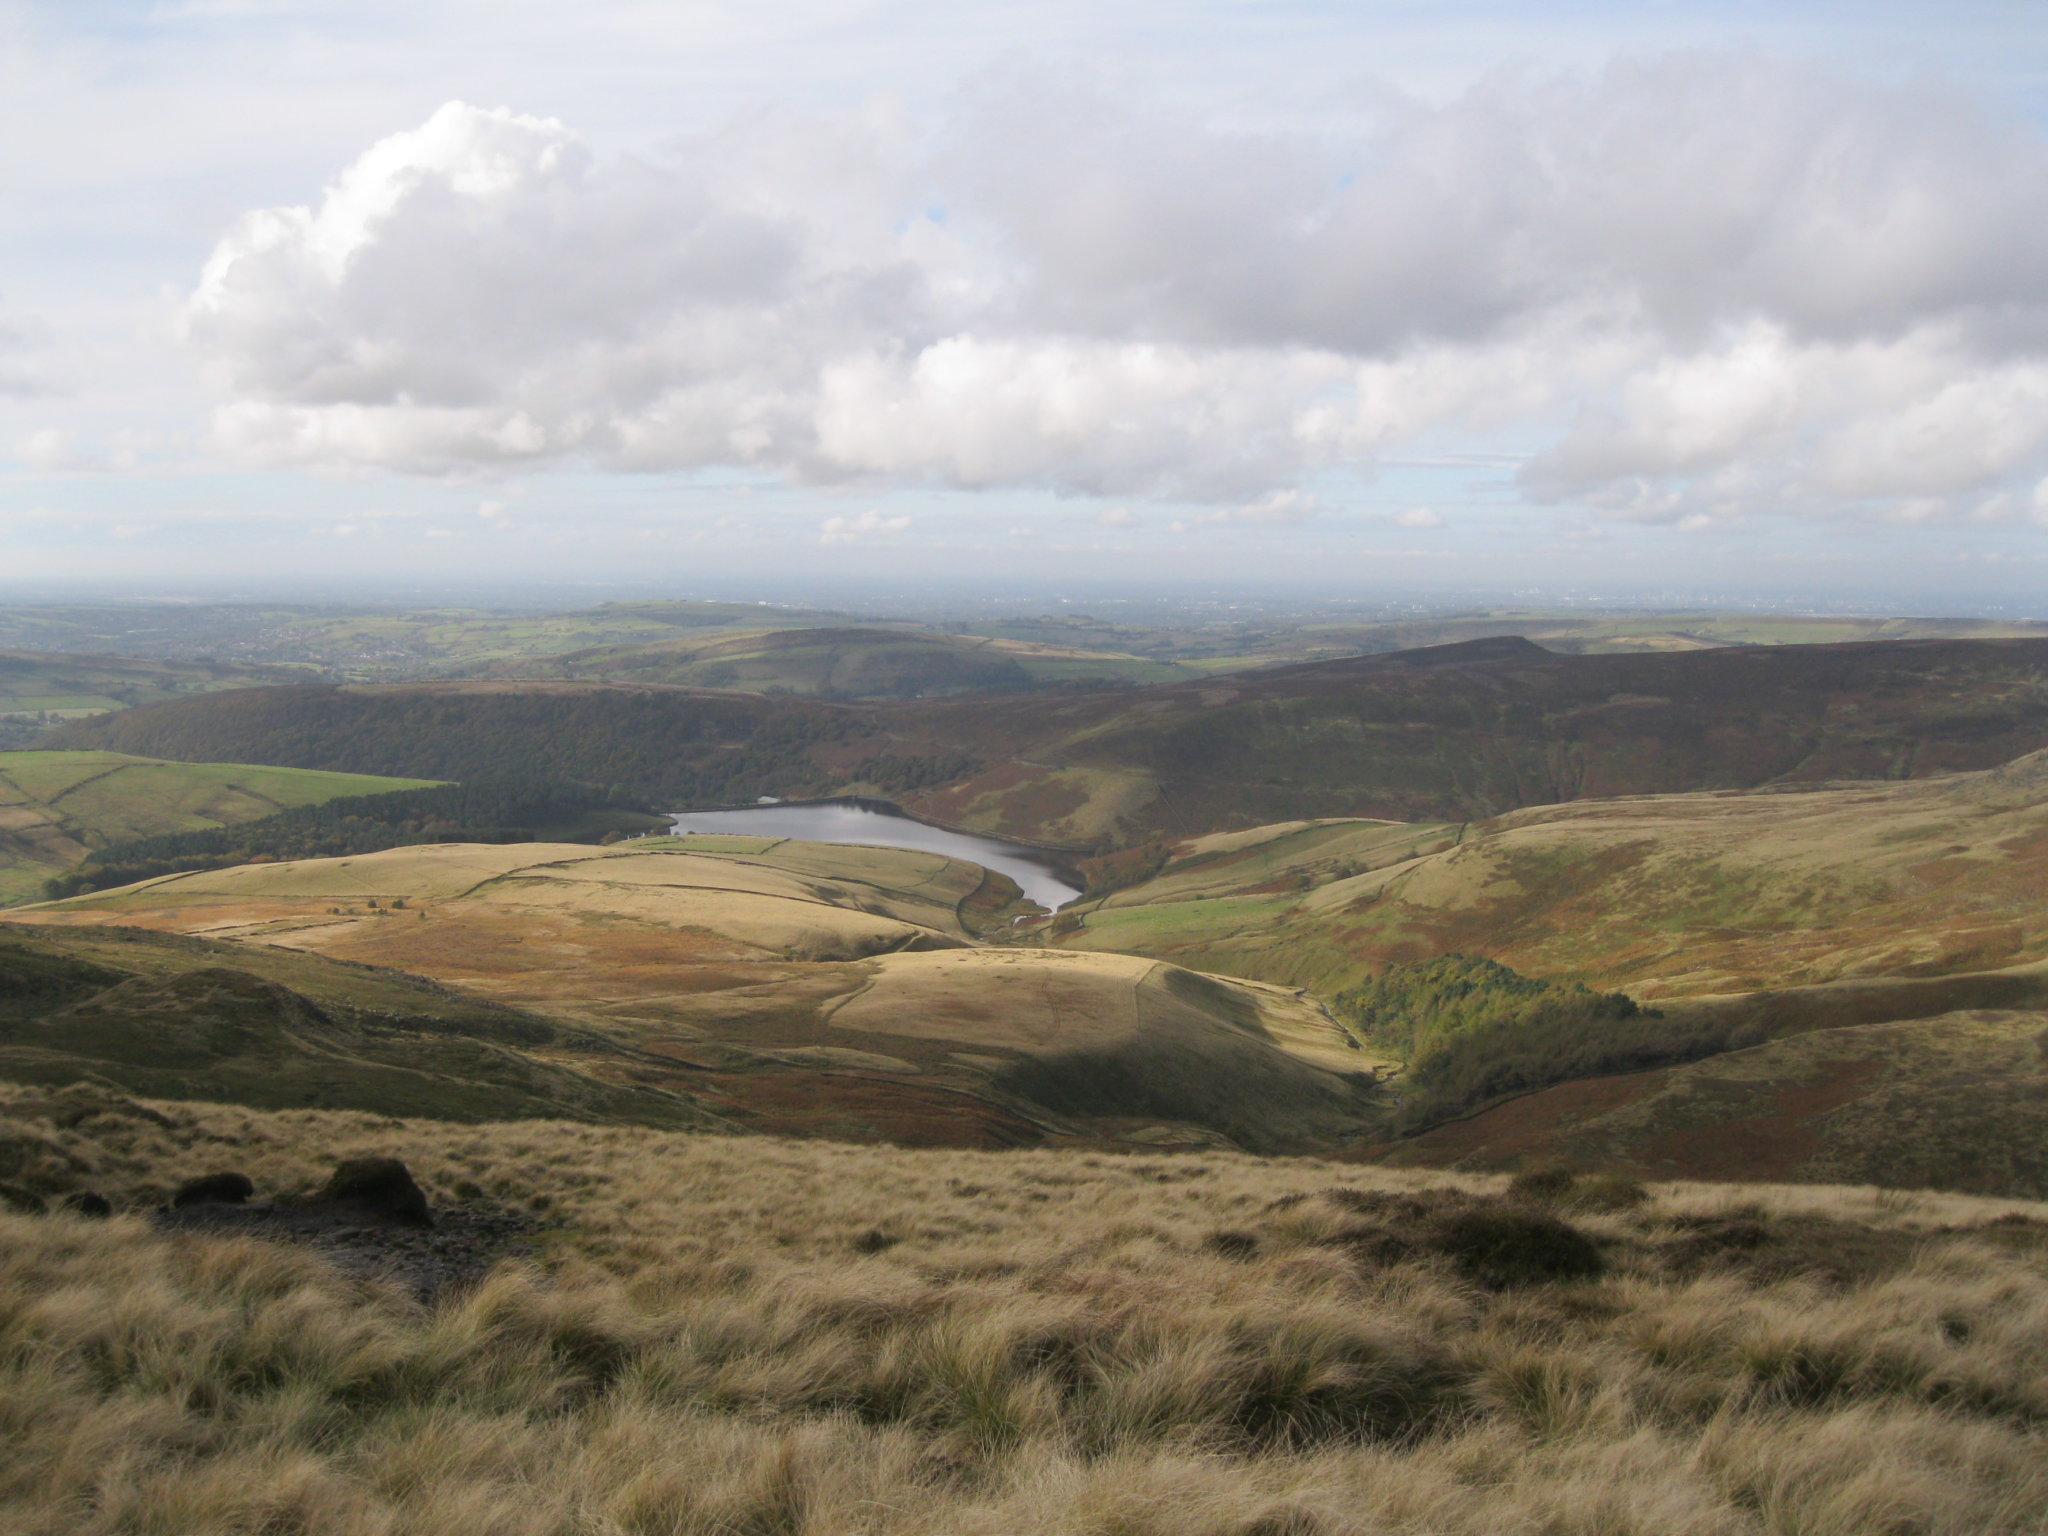 View from Kinder Scout in the High Peak